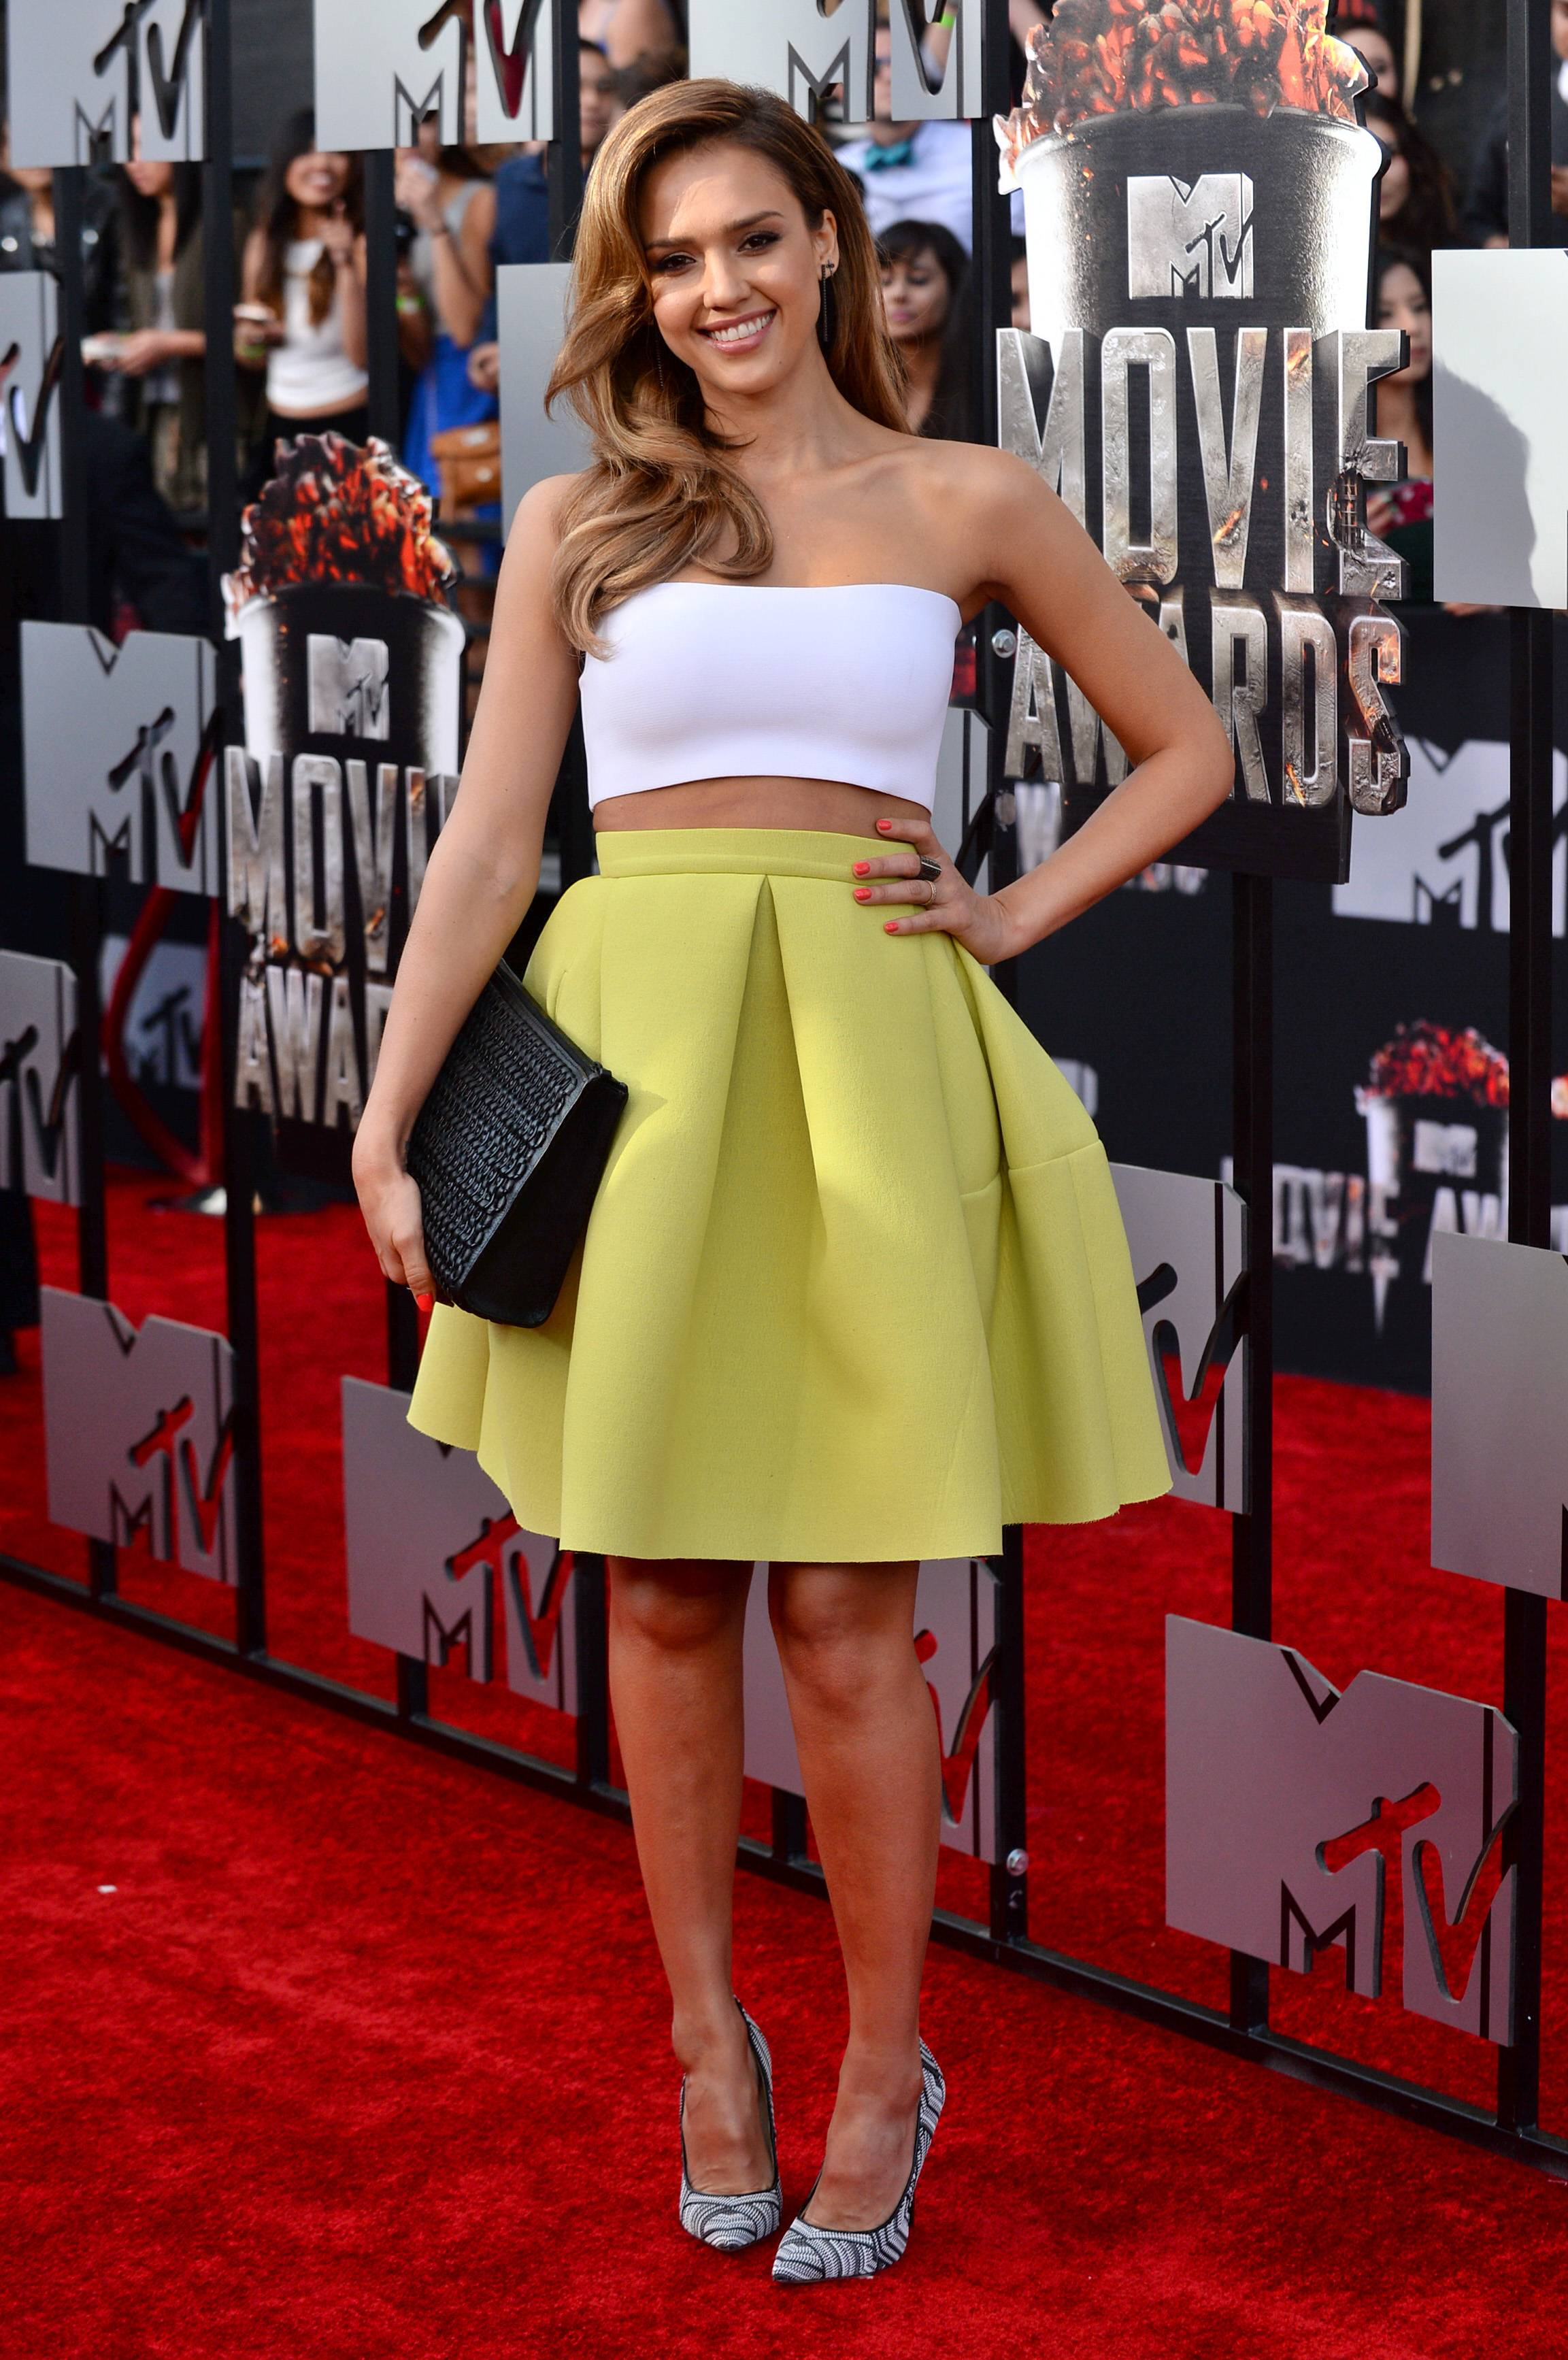 Jessica Alba arrives at the MTV Movie Awards on Sunday.